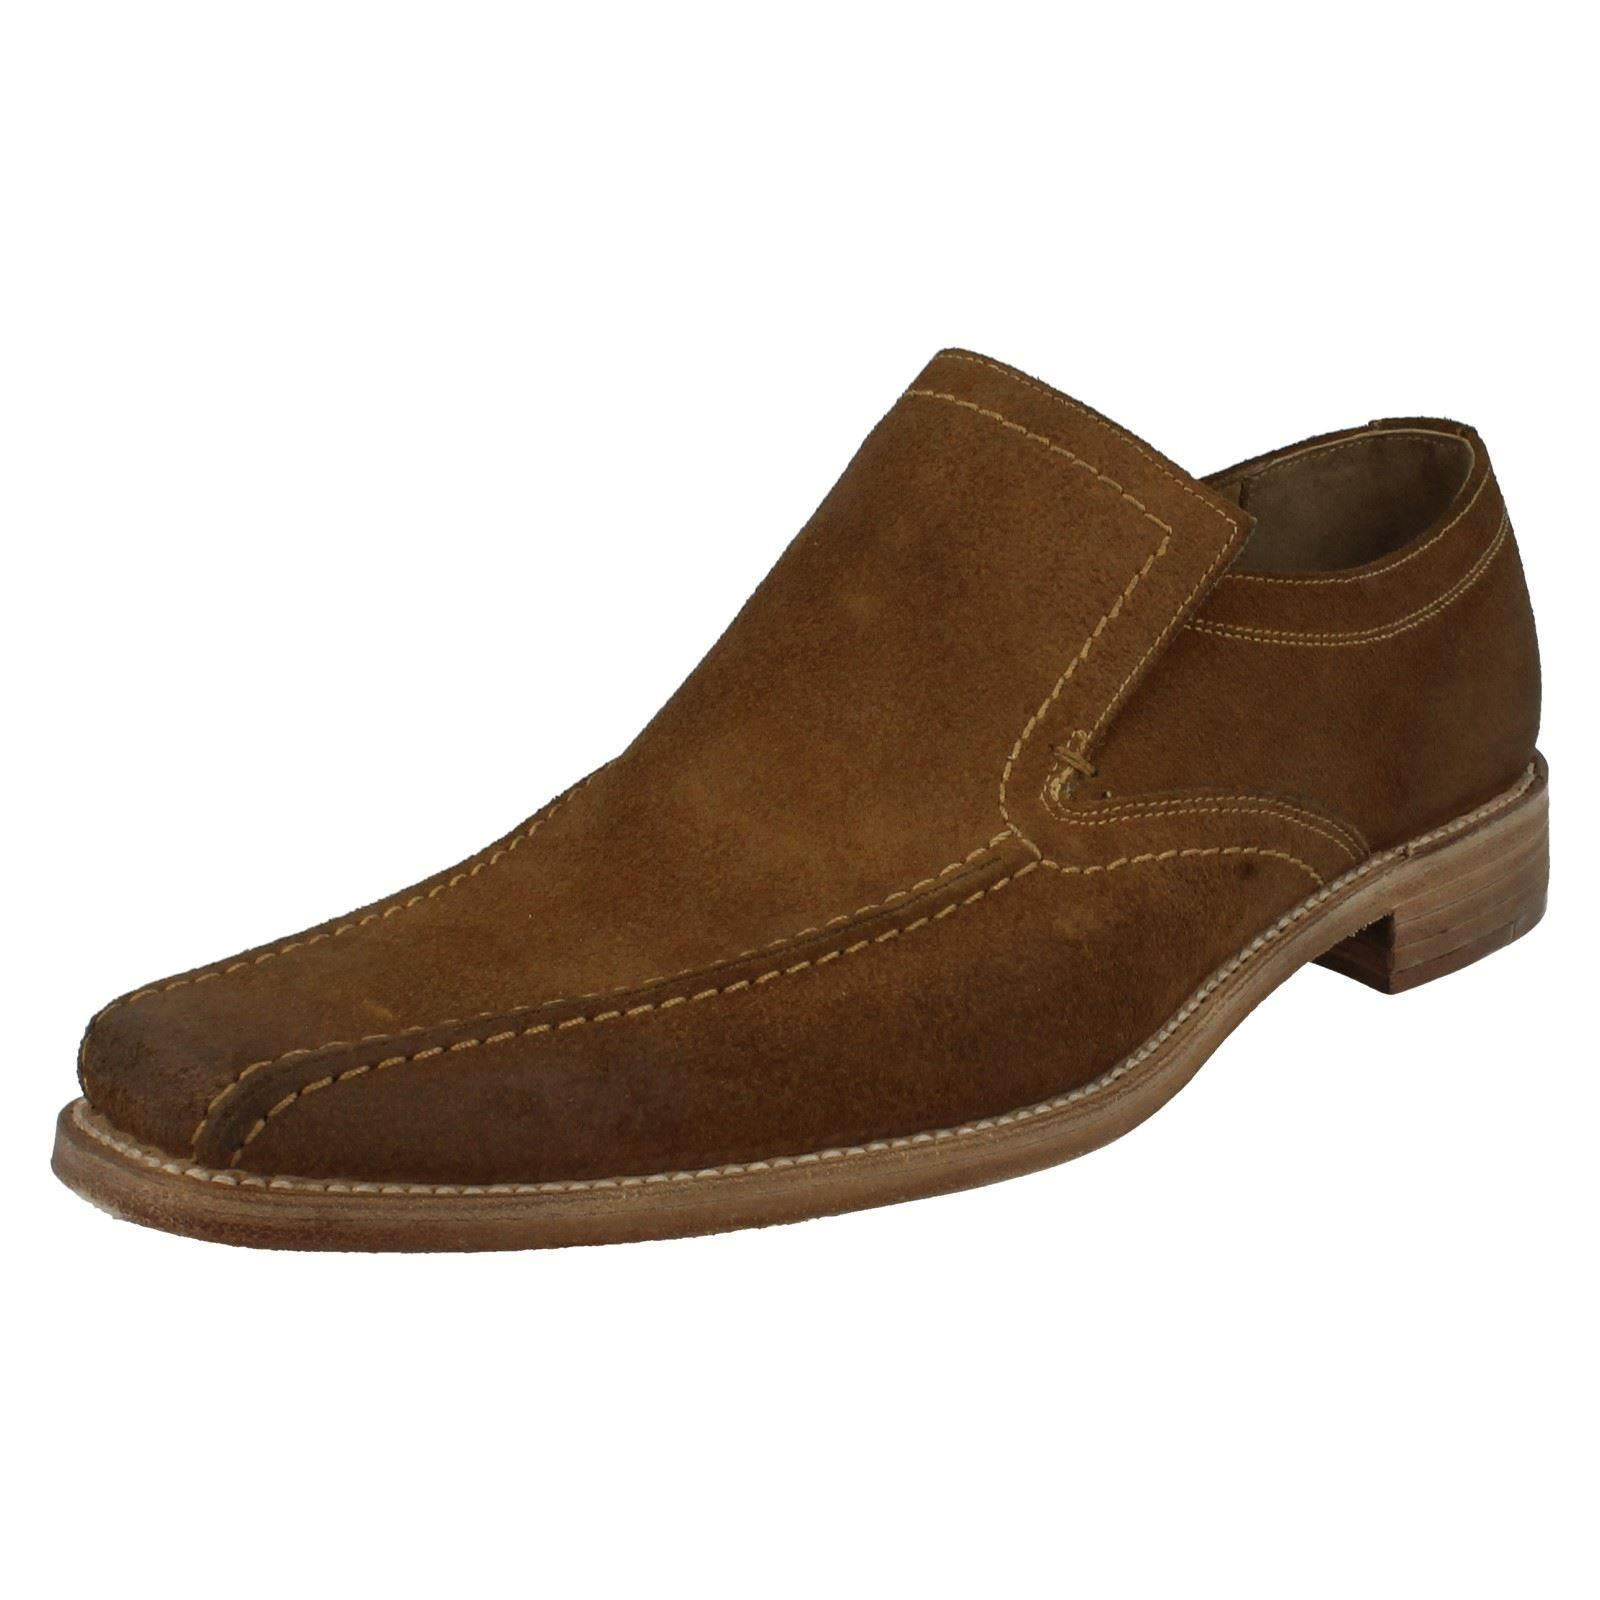 Mens Loake Formal Distressed Suede Schuhes - Leon